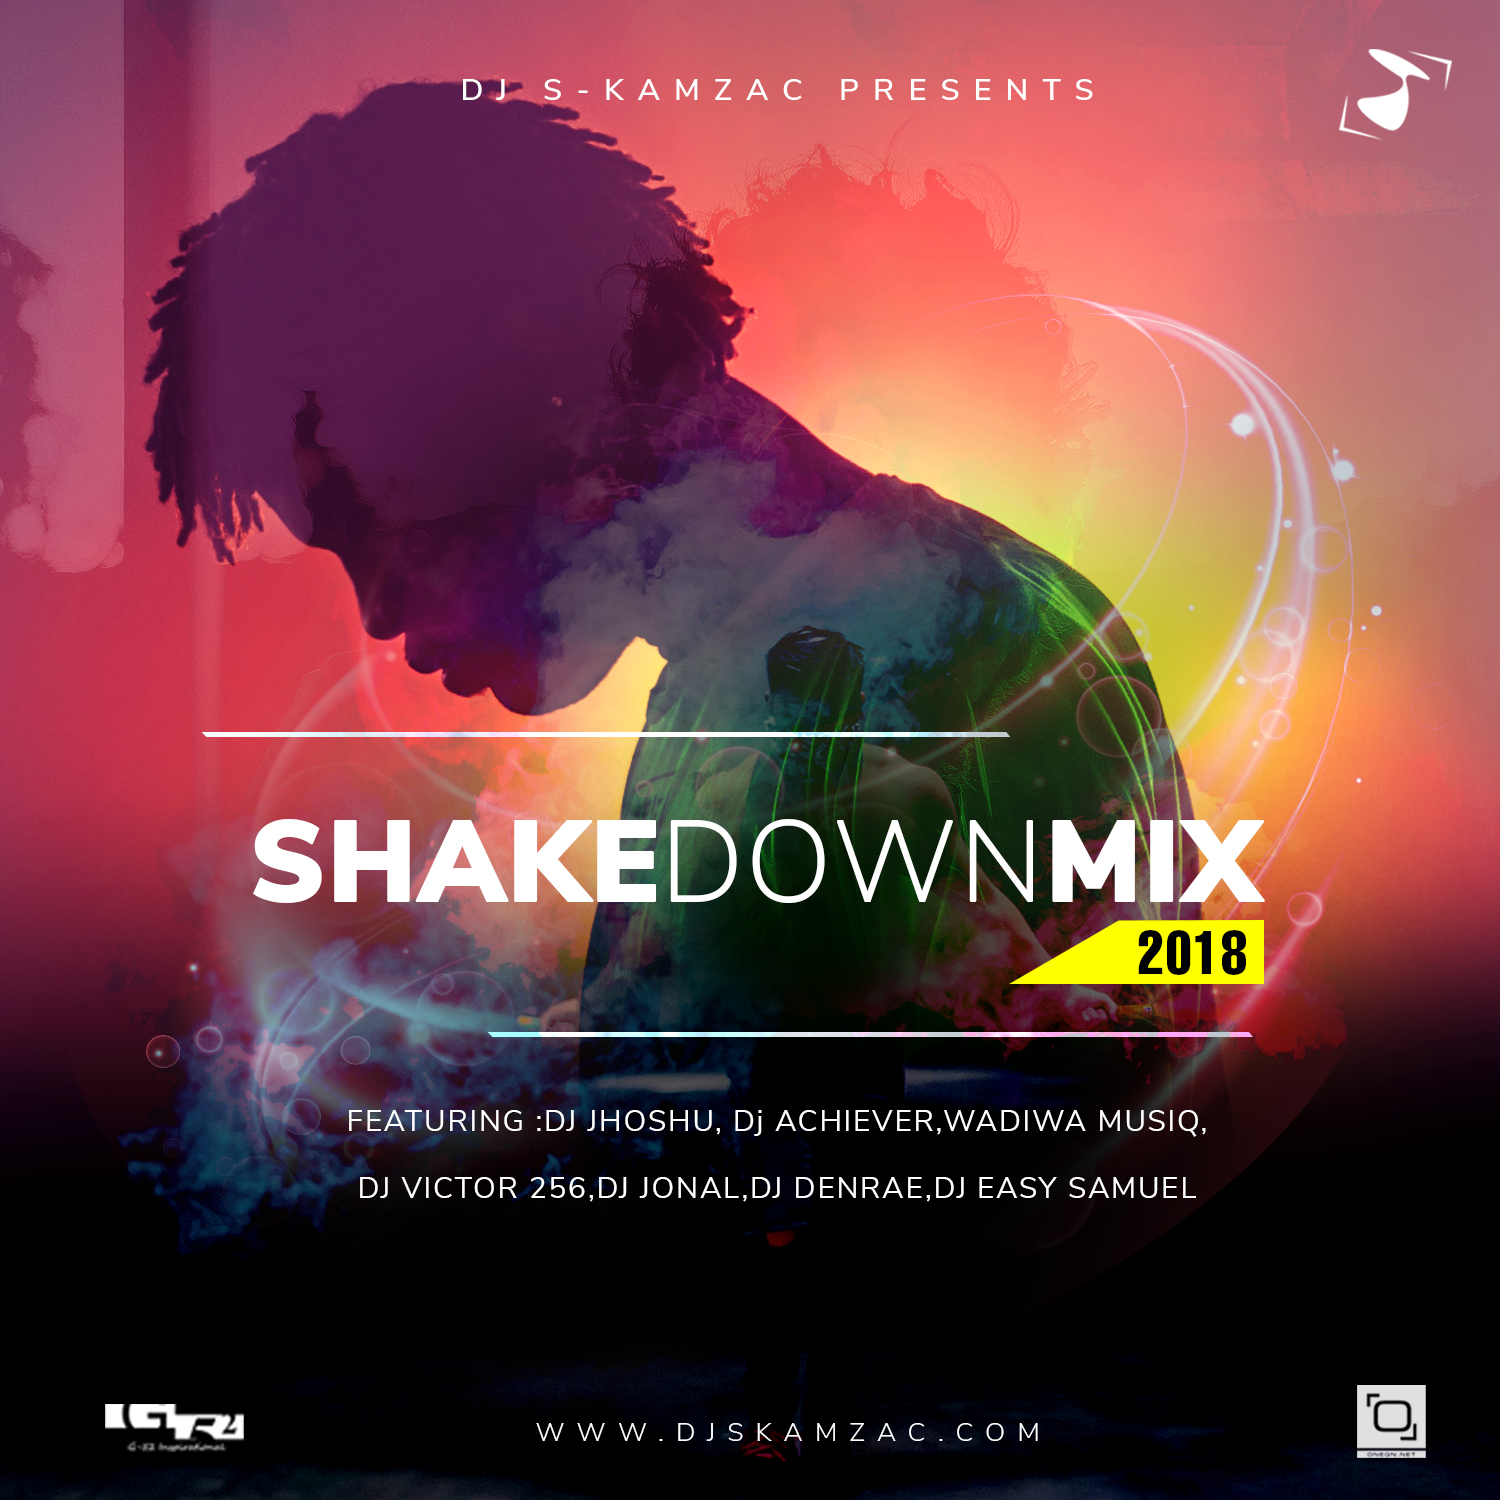 Download Shake Down Mix done by 7 Djs and 1 International Mc Gospel